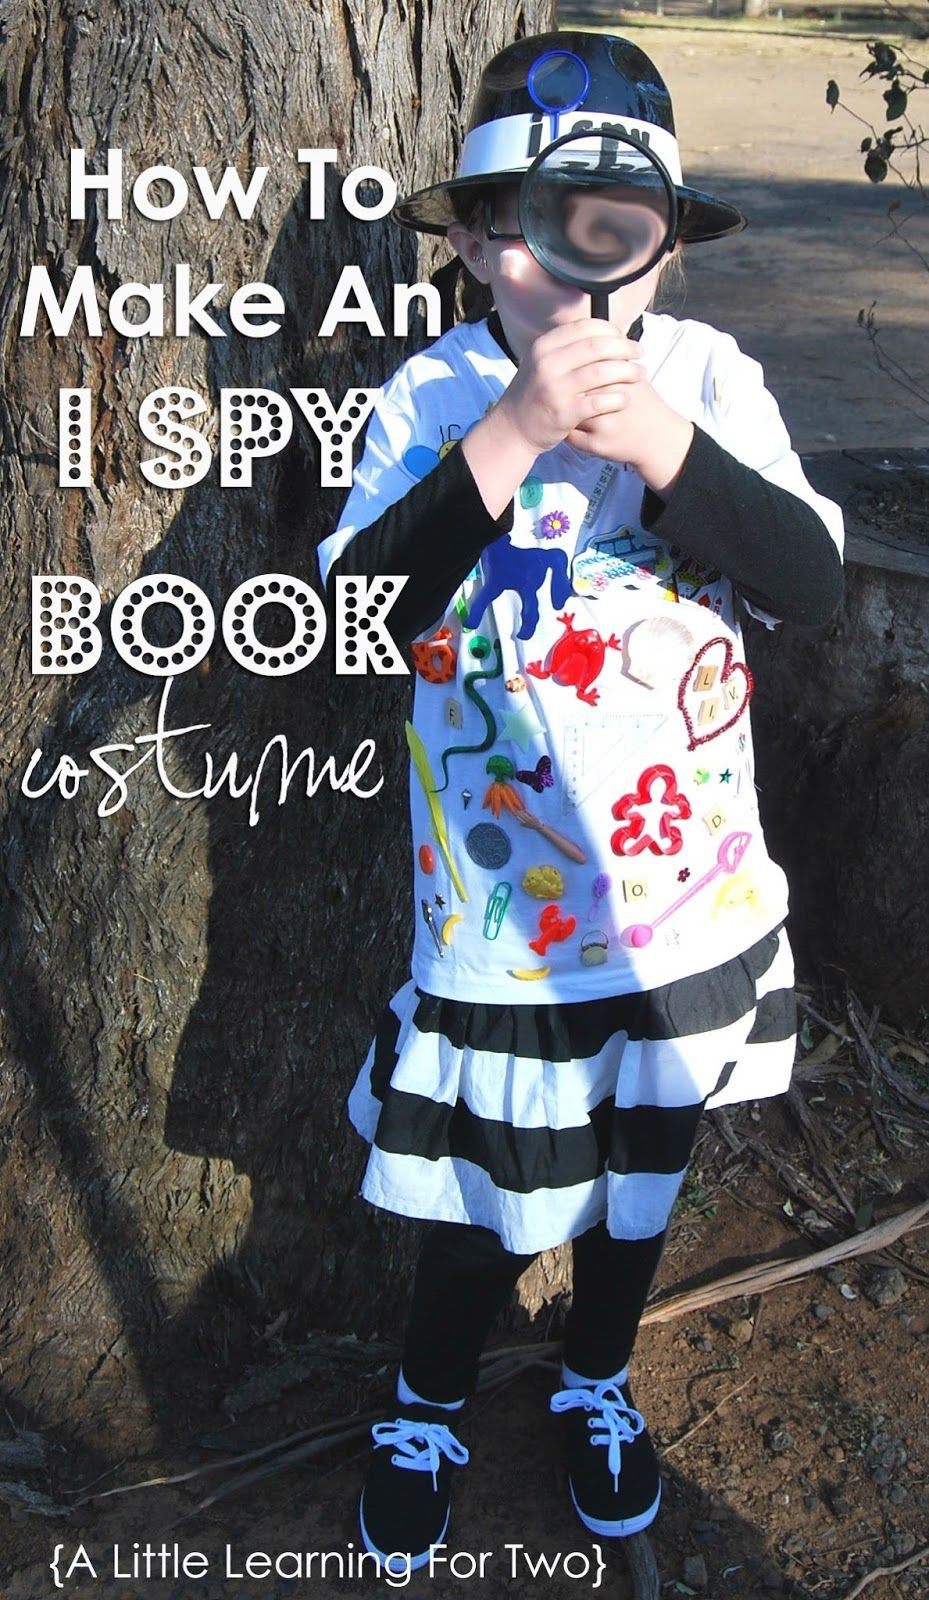 I Spy Book Costume - Pinned by u2013 Please Visit for all our pediatric therapy pins & ISpyCostume.jpg 929×1600 pixels | nbff ideas | Pinterest | Costumes ...